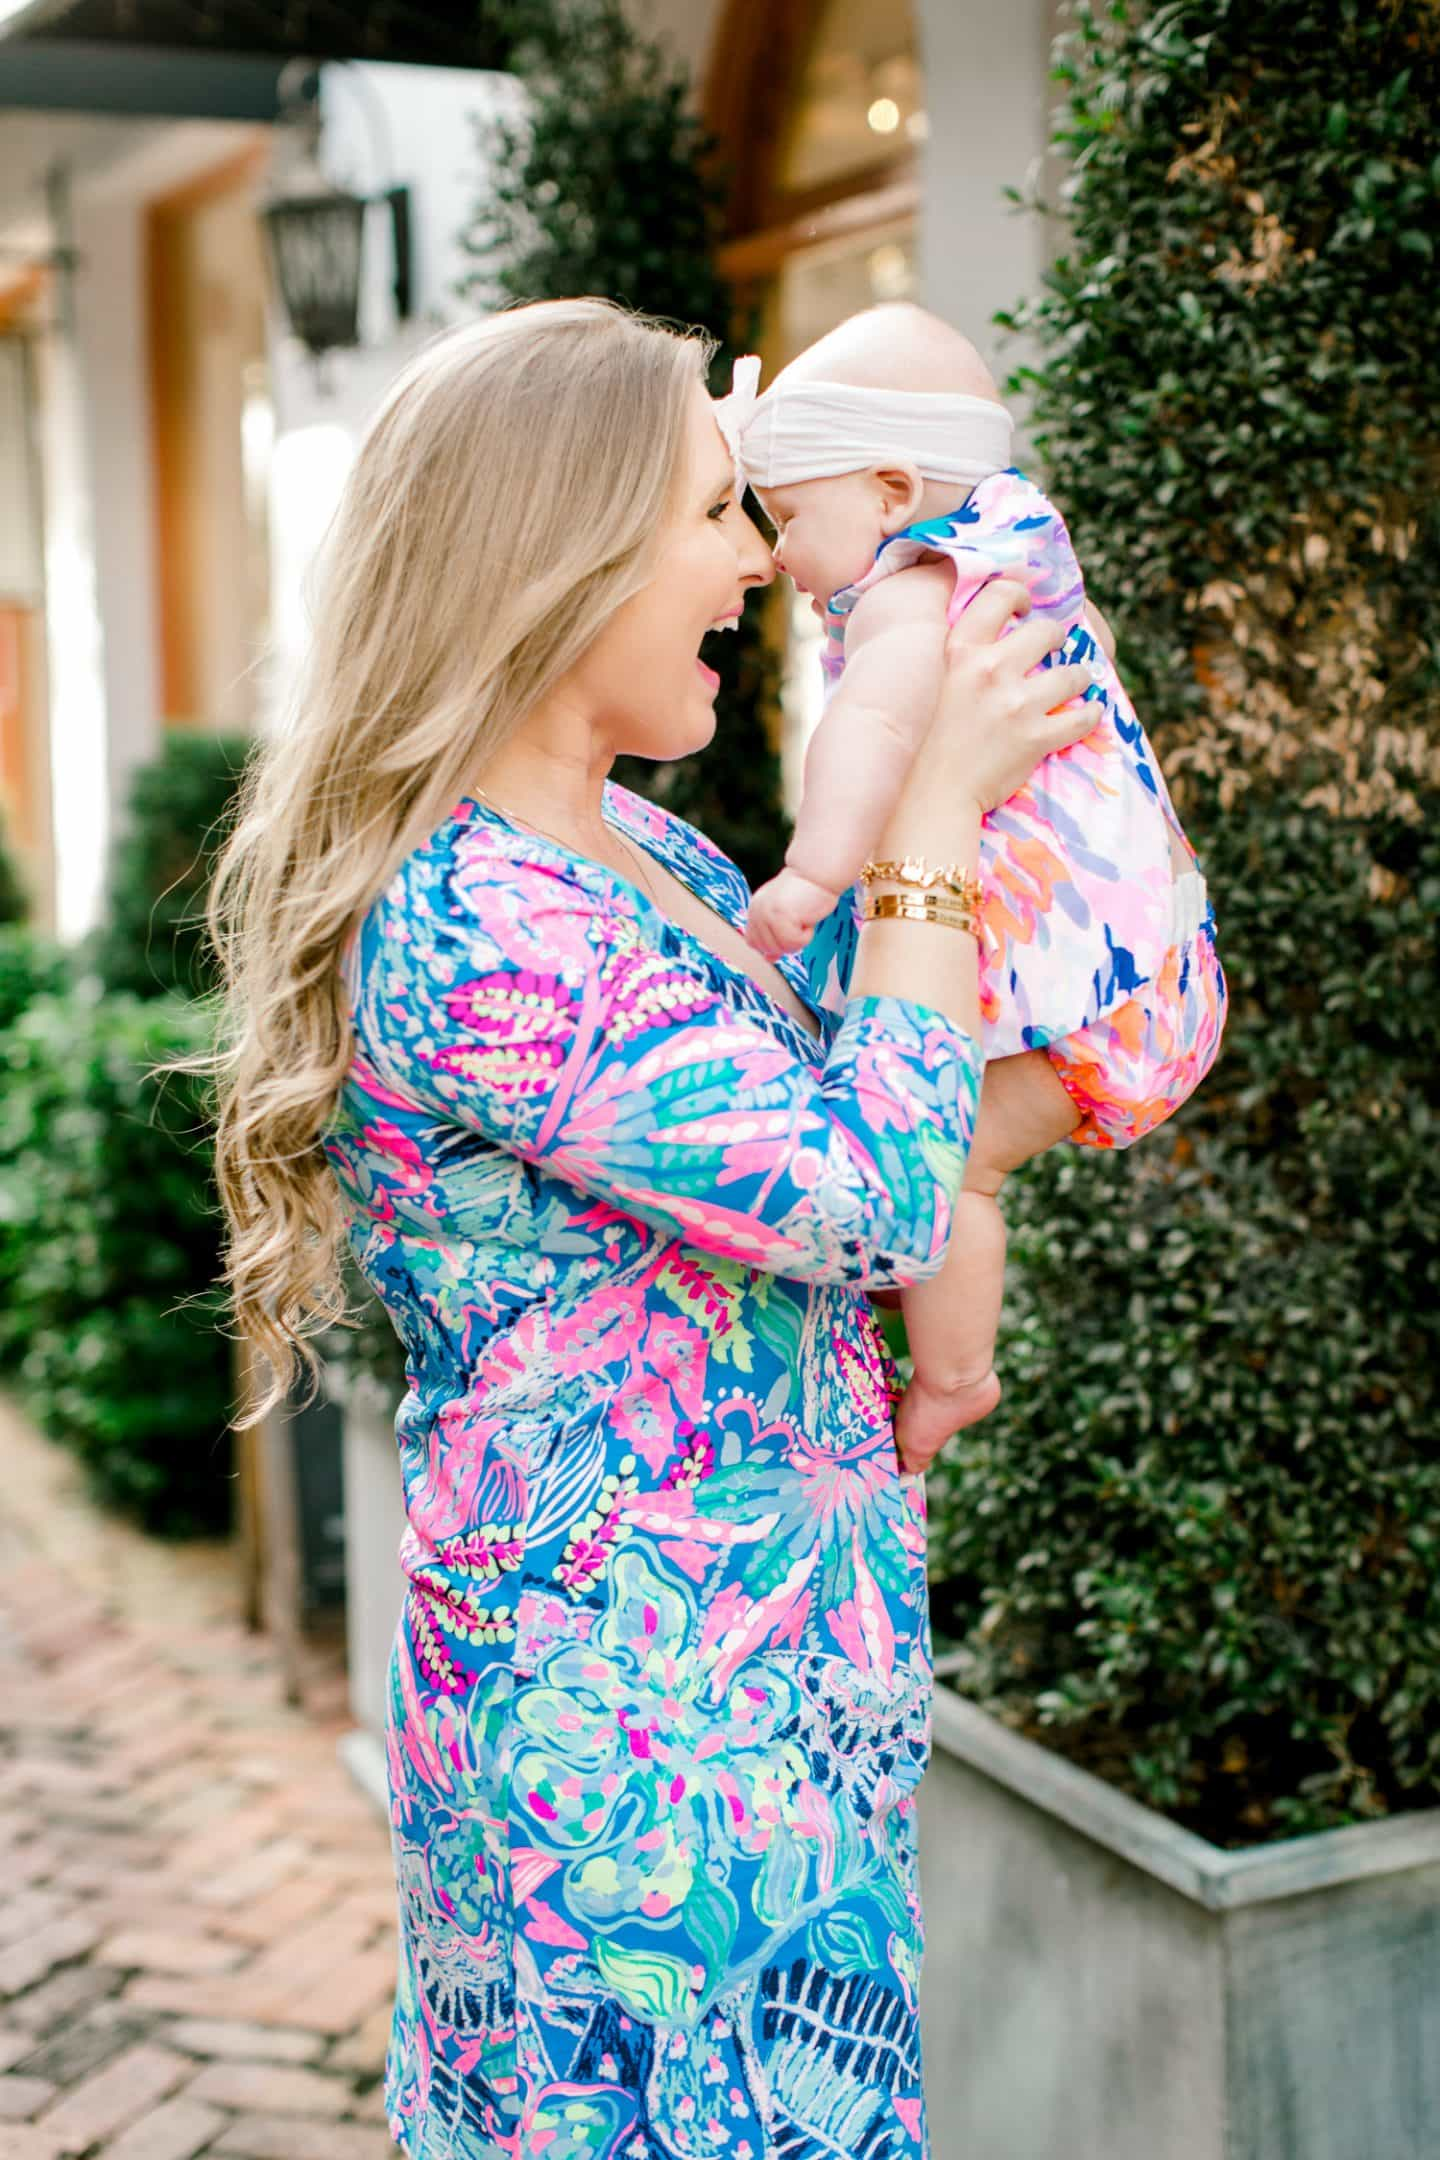 Lilly Pulitzer Mommy Amp Me Outfit Ashley Brooke Nicholas